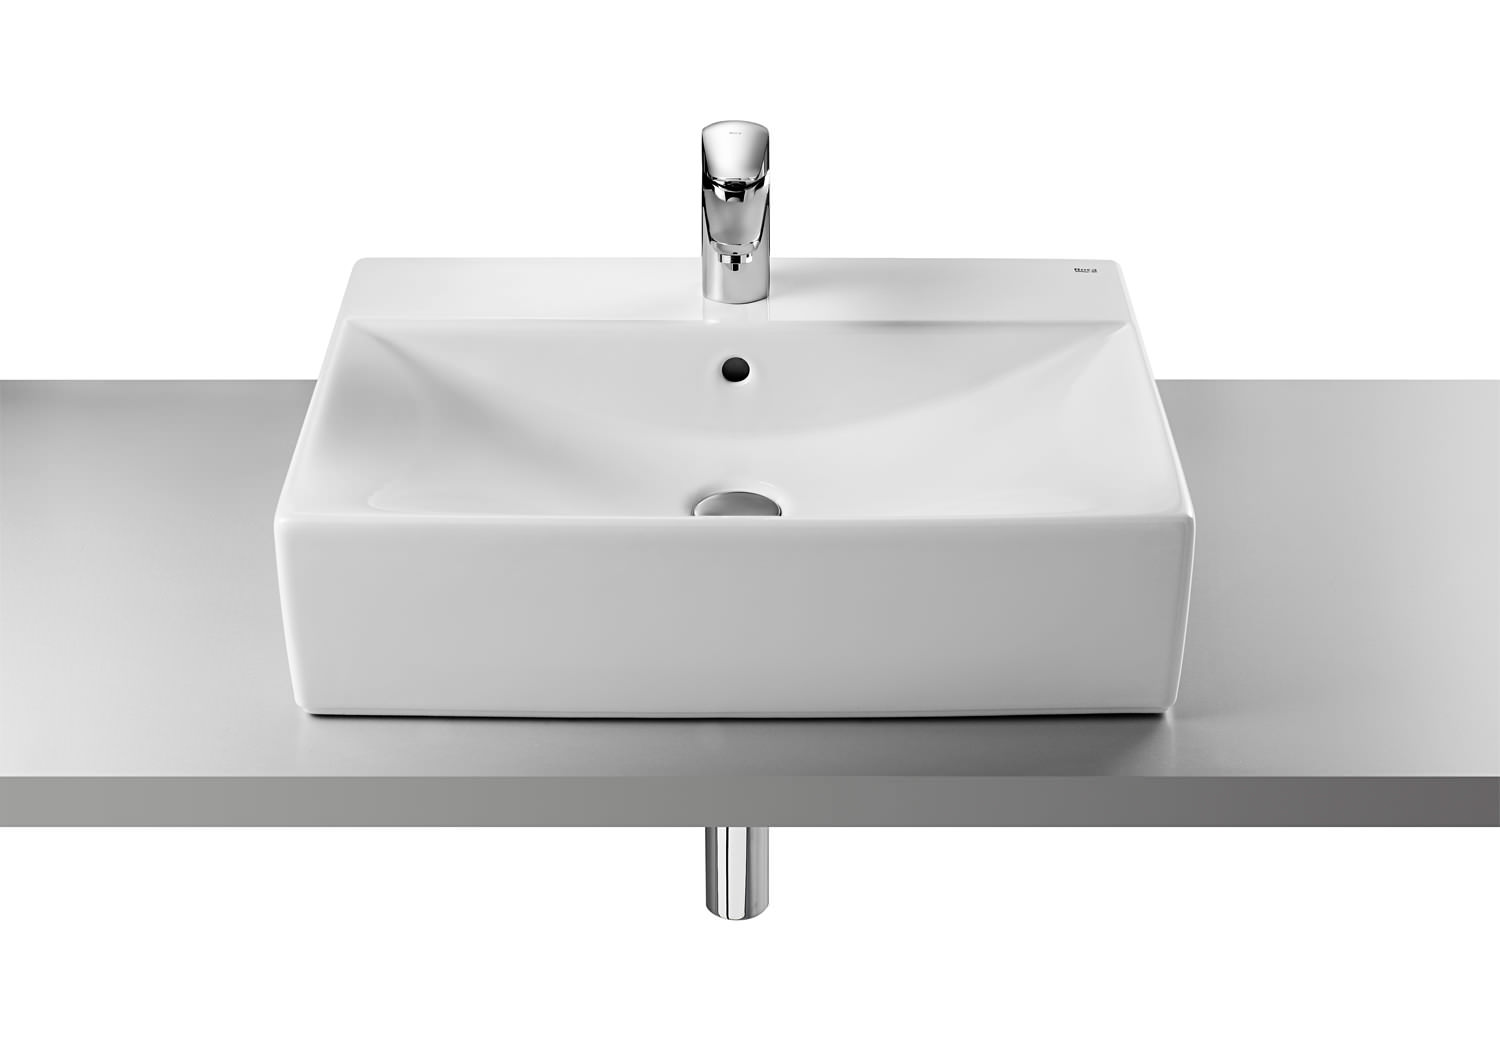 Roca Bathroom Accessories Diverta 600 X 440mm On Countertop Basin With 1 Taphole